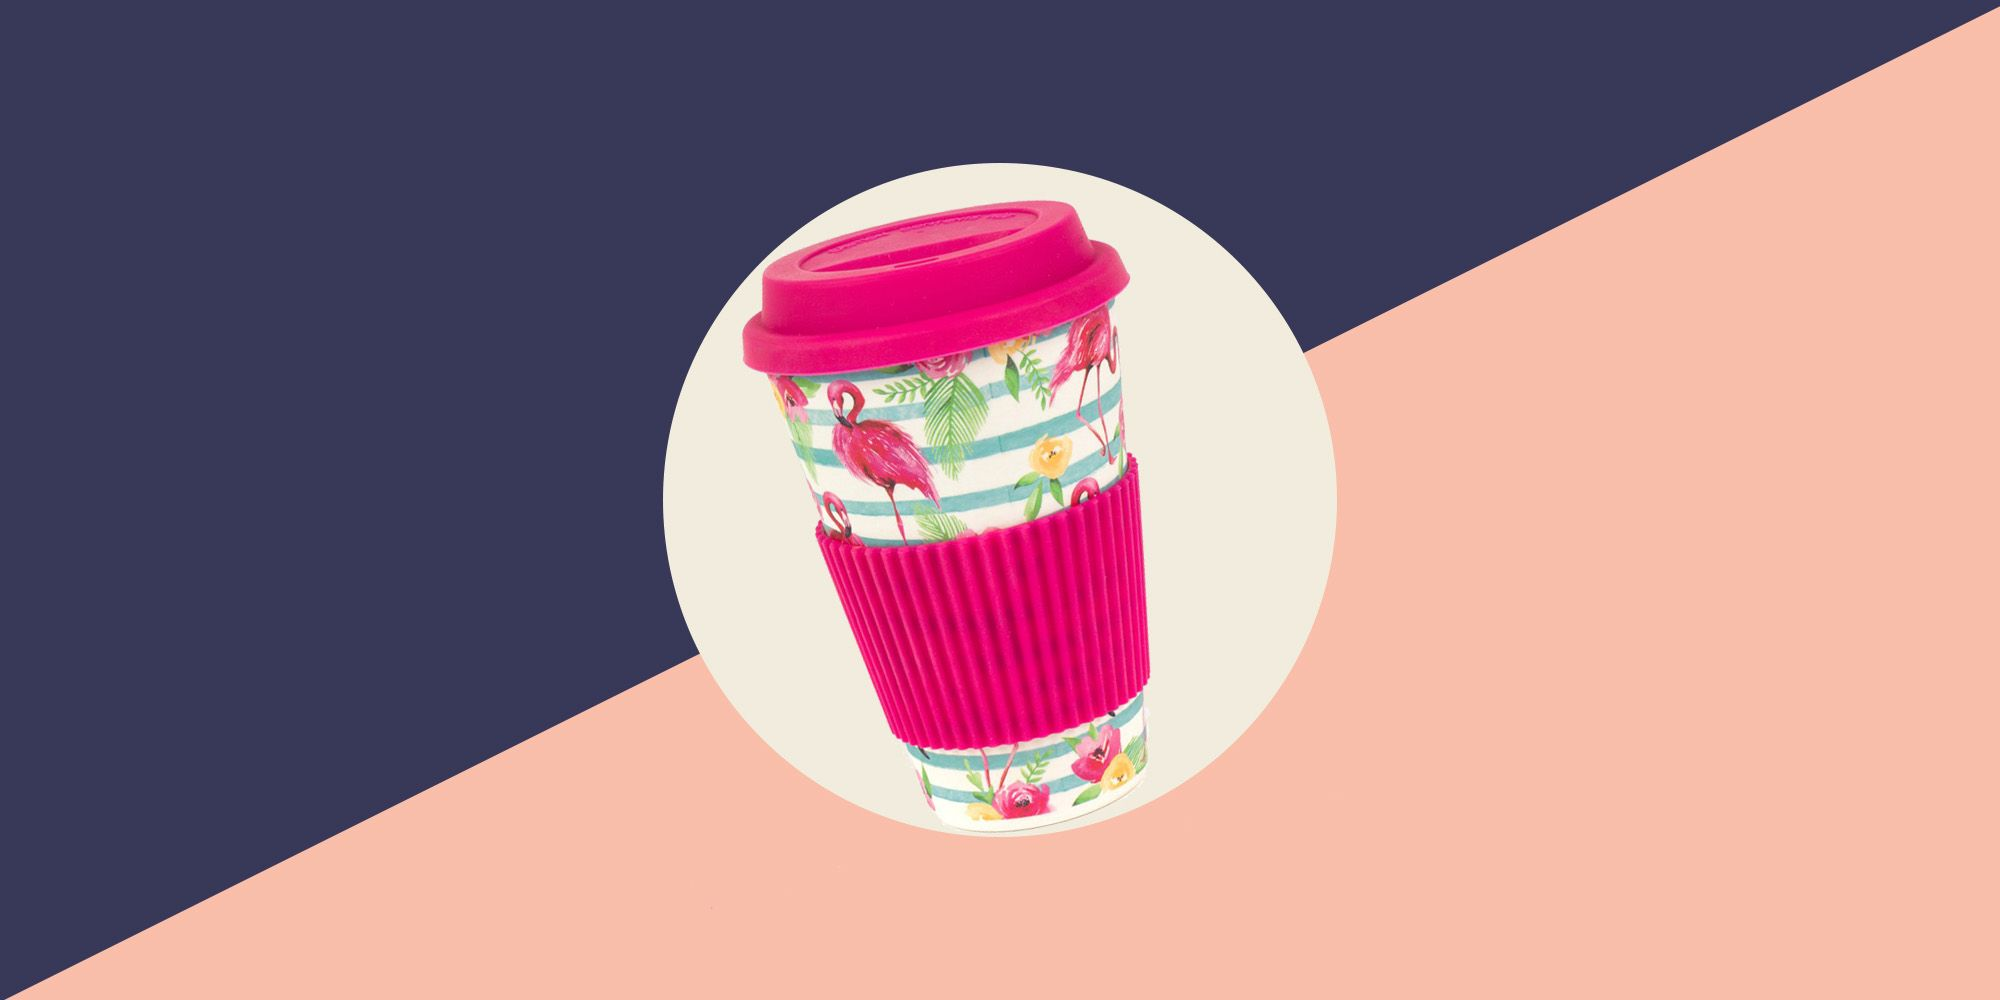 Love Island: Where To Buy The Eco Friendly Bamboo Flamingo Cups